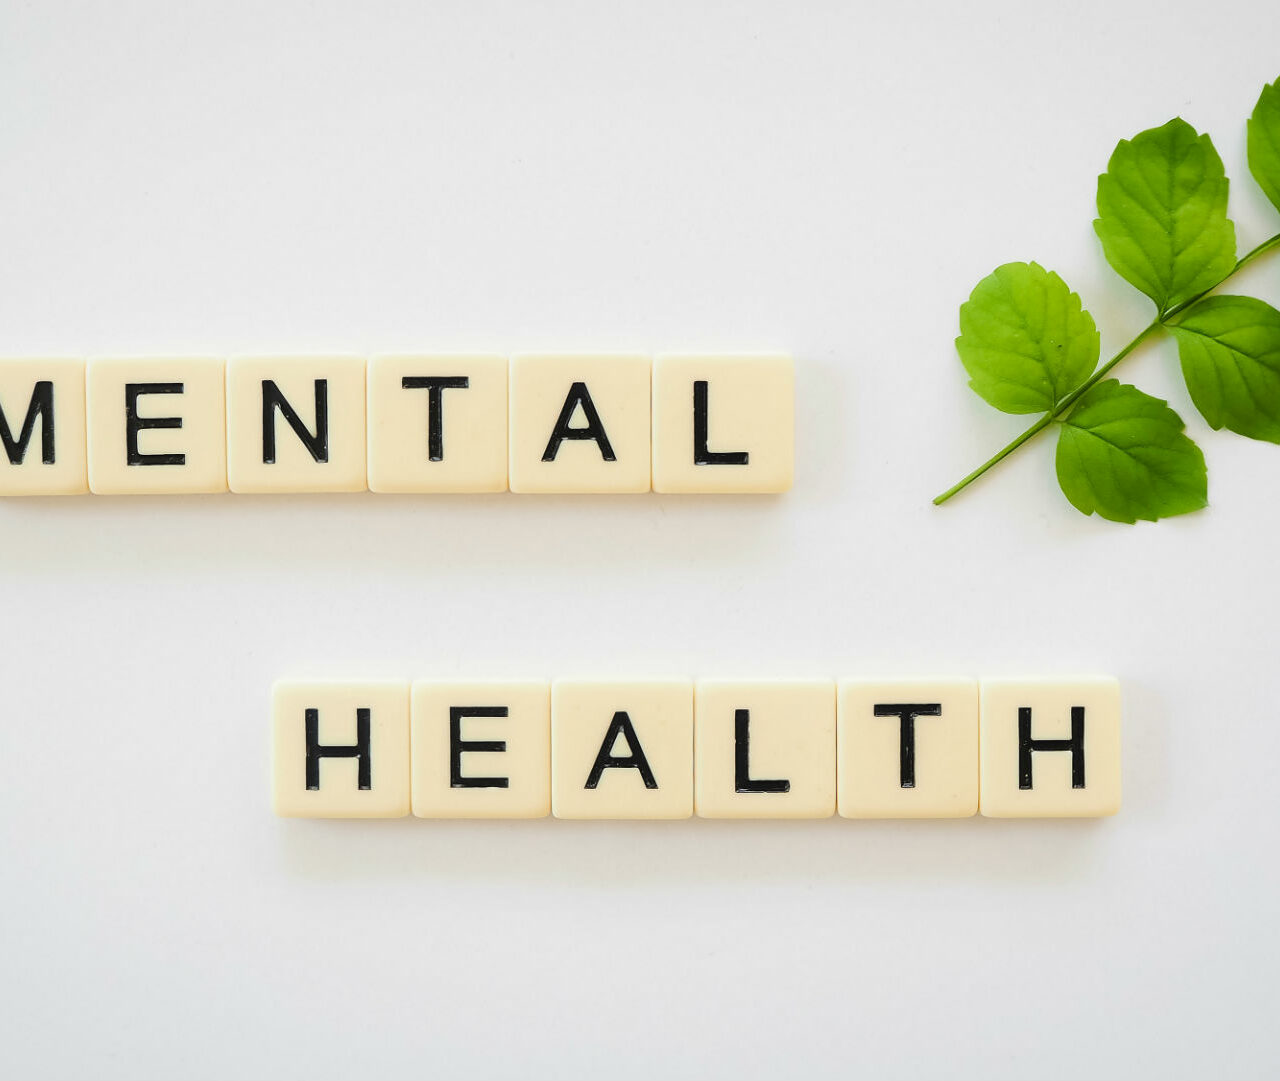 Analysis by Deloitte says: Poor mental health costs UK employers up to £45 billion a year